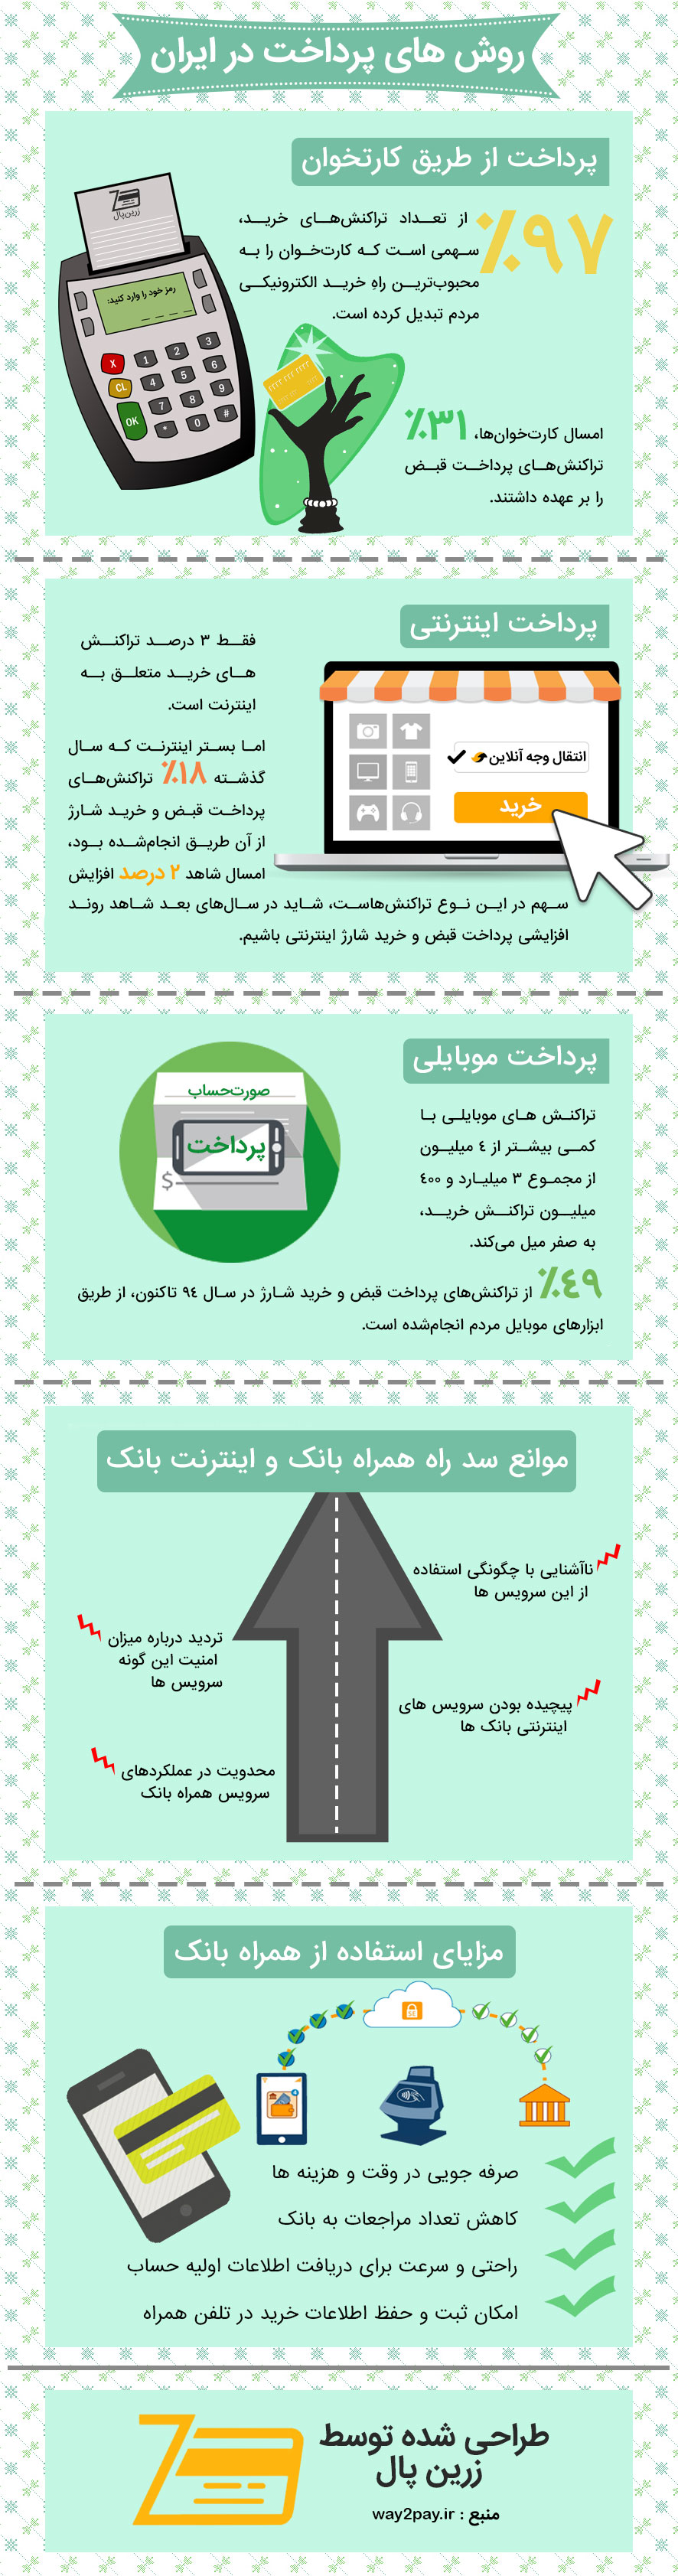 payment-methods-in-iran-infographic